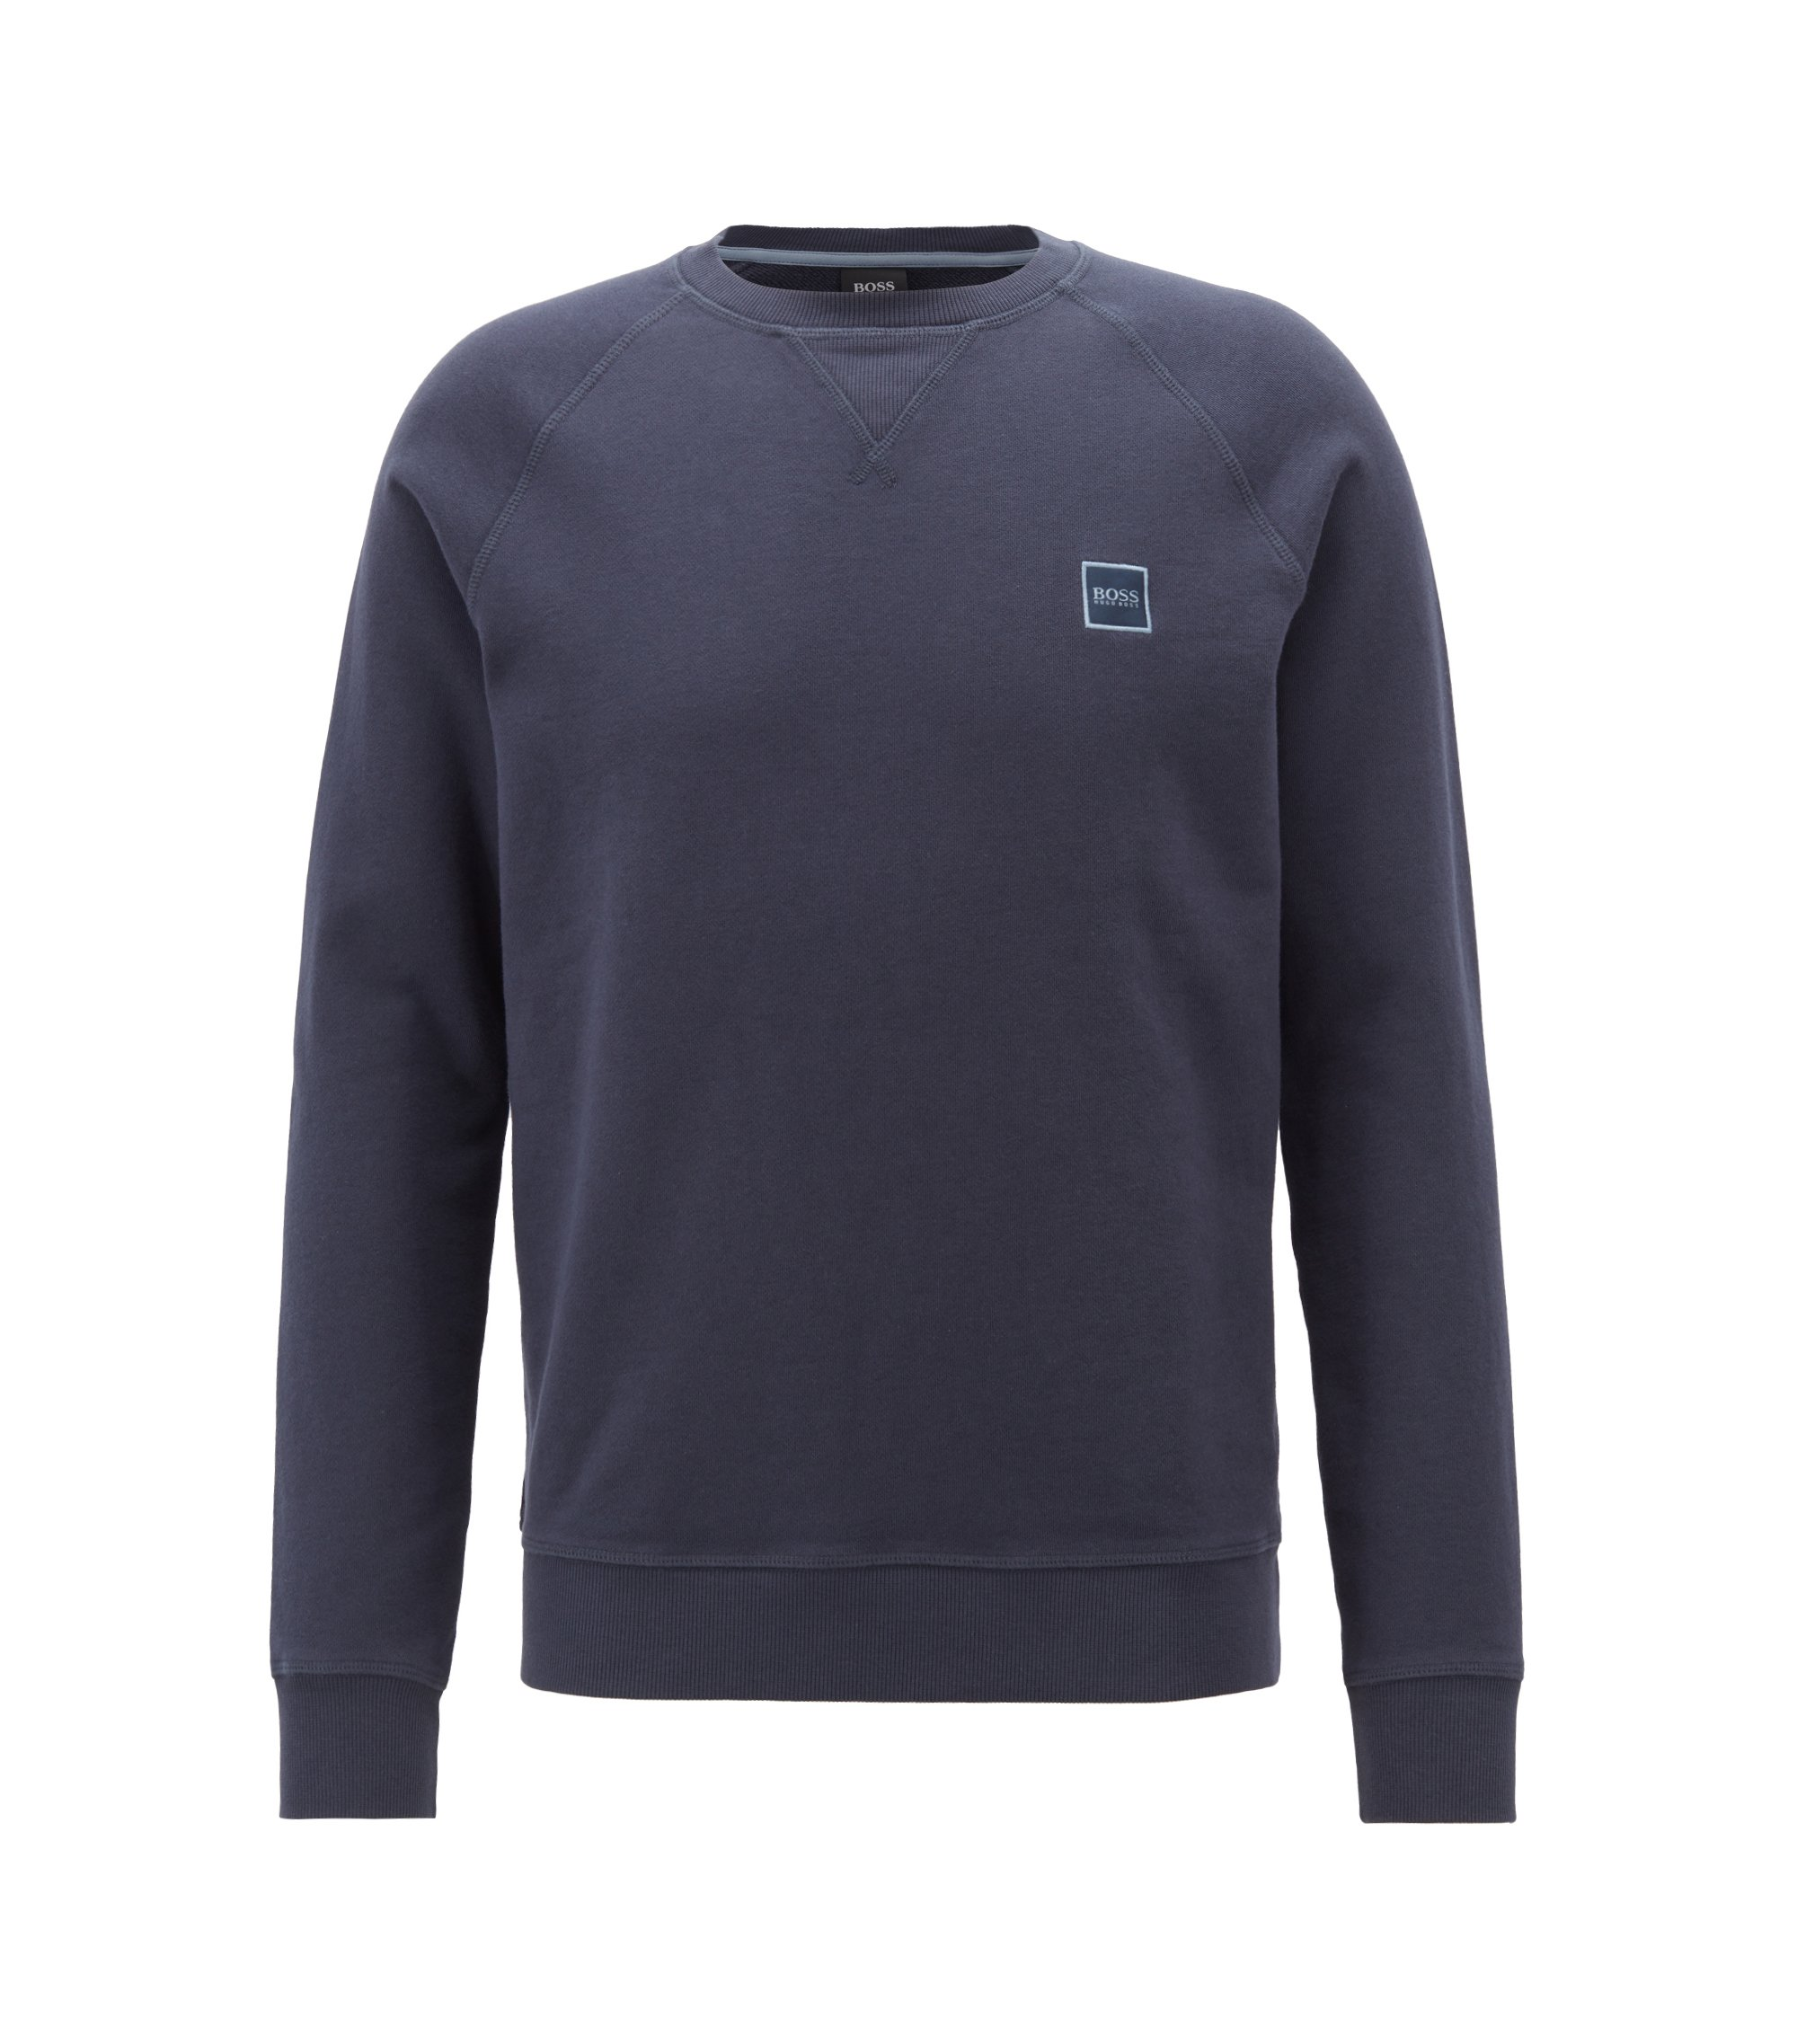 French-terry sweatshirt with logo patch, Dark Blue